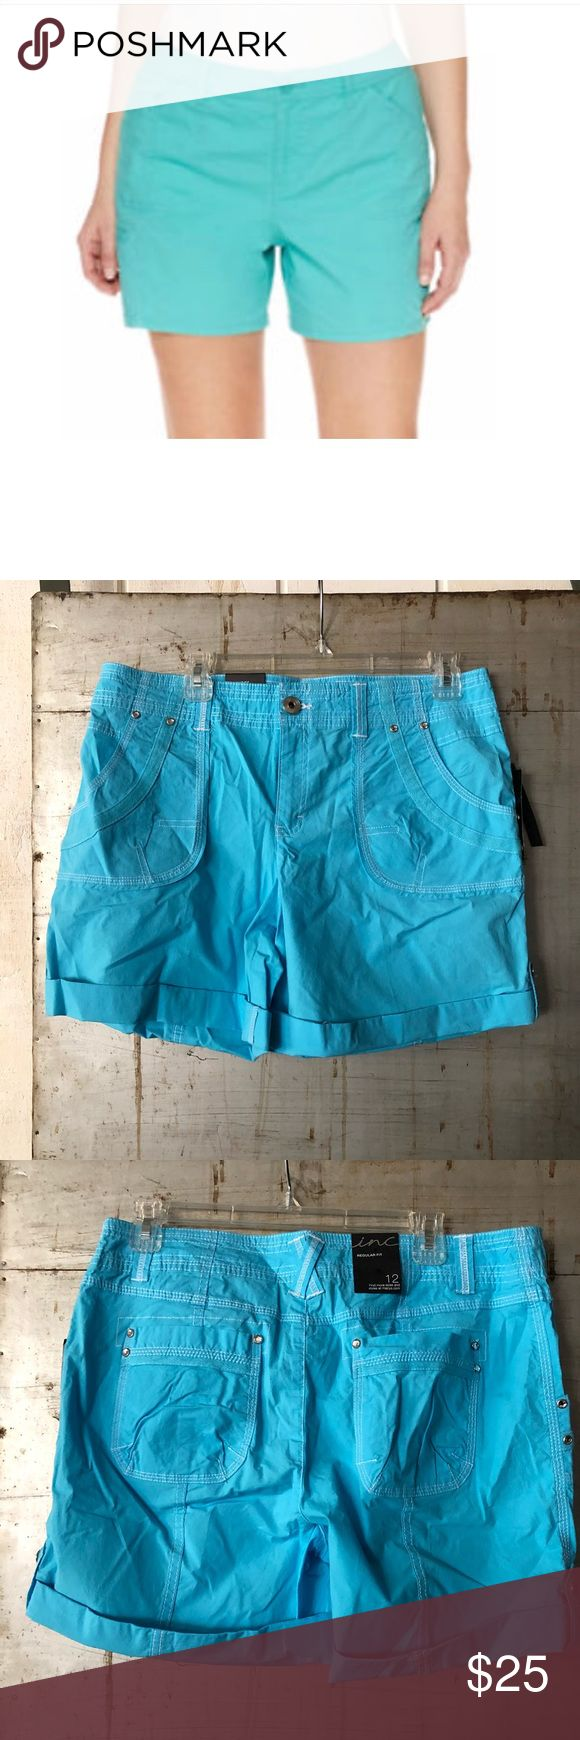 """Sky blue shorts Sky blue shorts INC international concepts via Macy's Inseam 6"""" rise 10"""" 📊Use size chart for fit  🚫modeling or trades (askers will be ignored) or lowballing  ✅ will consider offers made through BLUE offer button.   ✅ bundle 3 or more items for a custom offer using bundle feature 🌻 Social media: Business Instagram @soundsdarling INC International Concepts Shorts"""